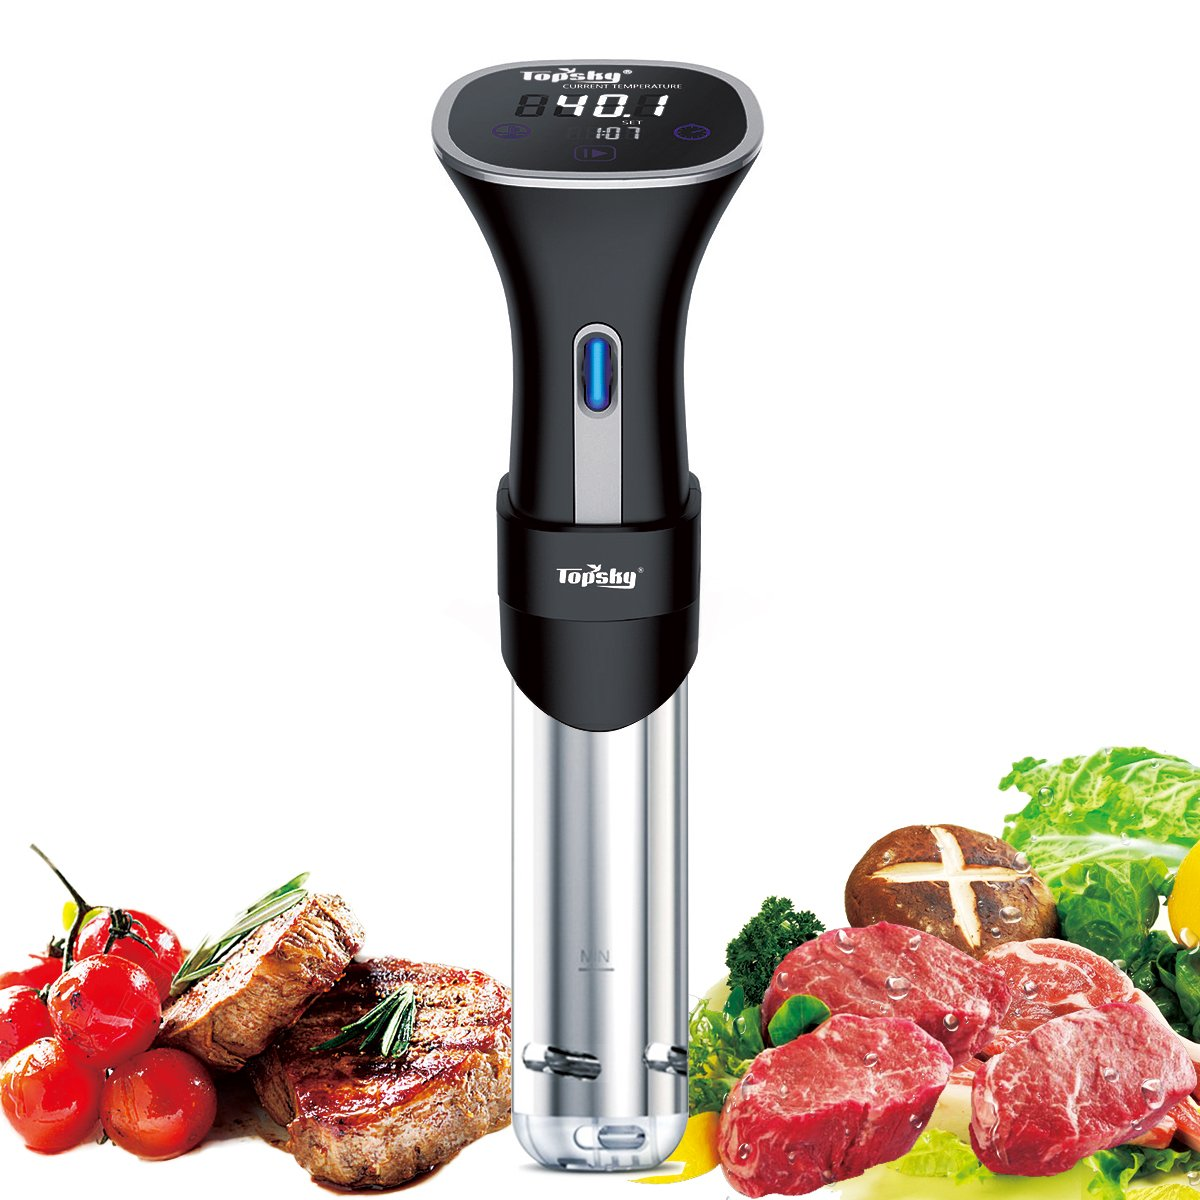 Topsky Sous Vide Cooker, Thermal Immersion Circulator Machine with Large Digital LCD Display, Time and Temperature Control, Quiet & Accurate, Stainless Steel, 800 Watts